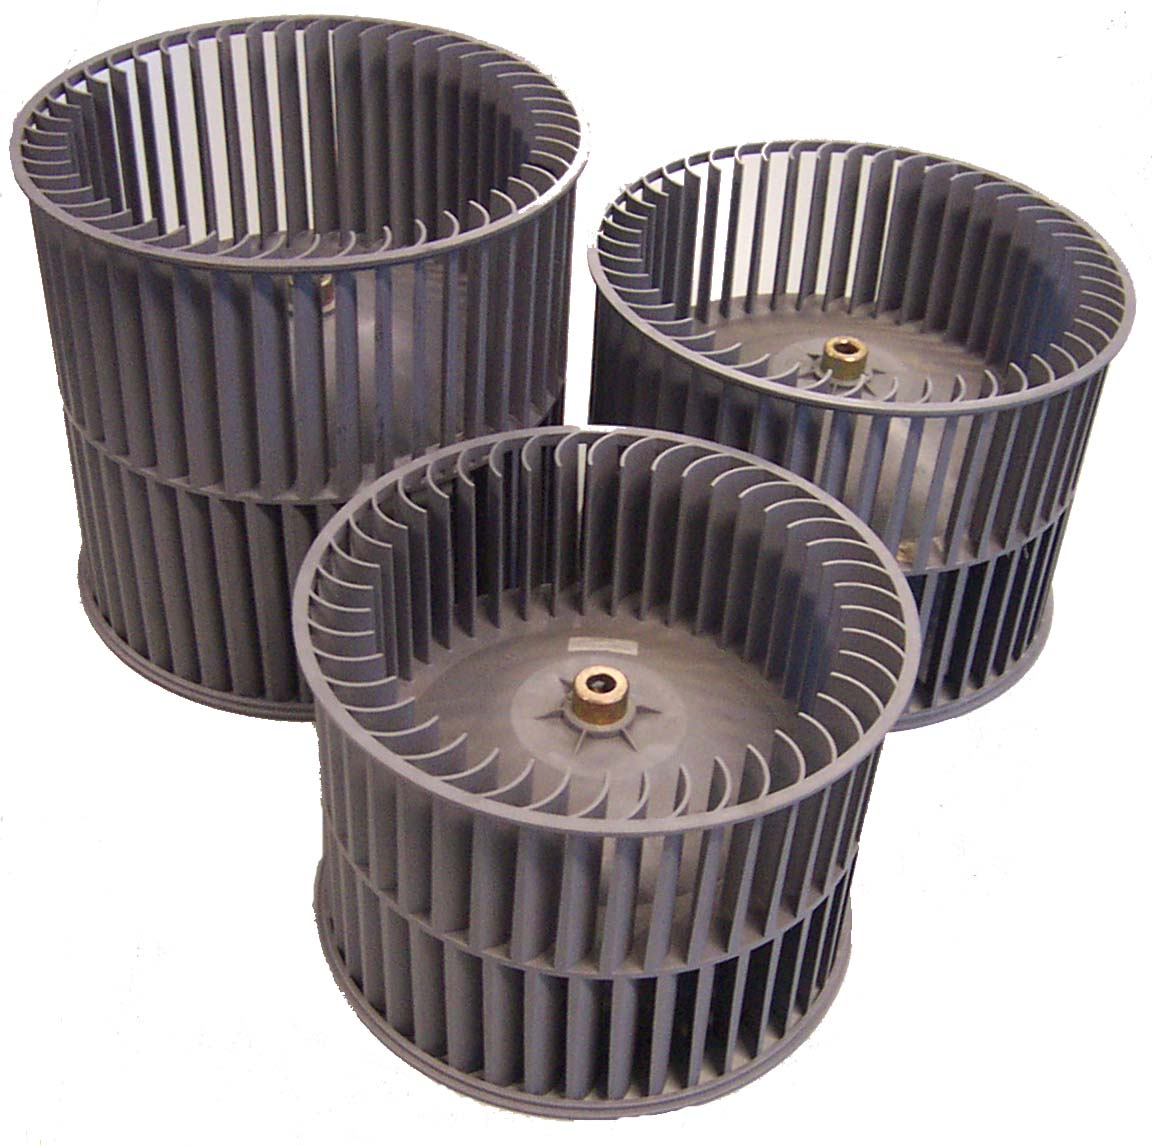 Types Commercial Blower Wheels : Canadian blowers and fans distributor of industrial gas